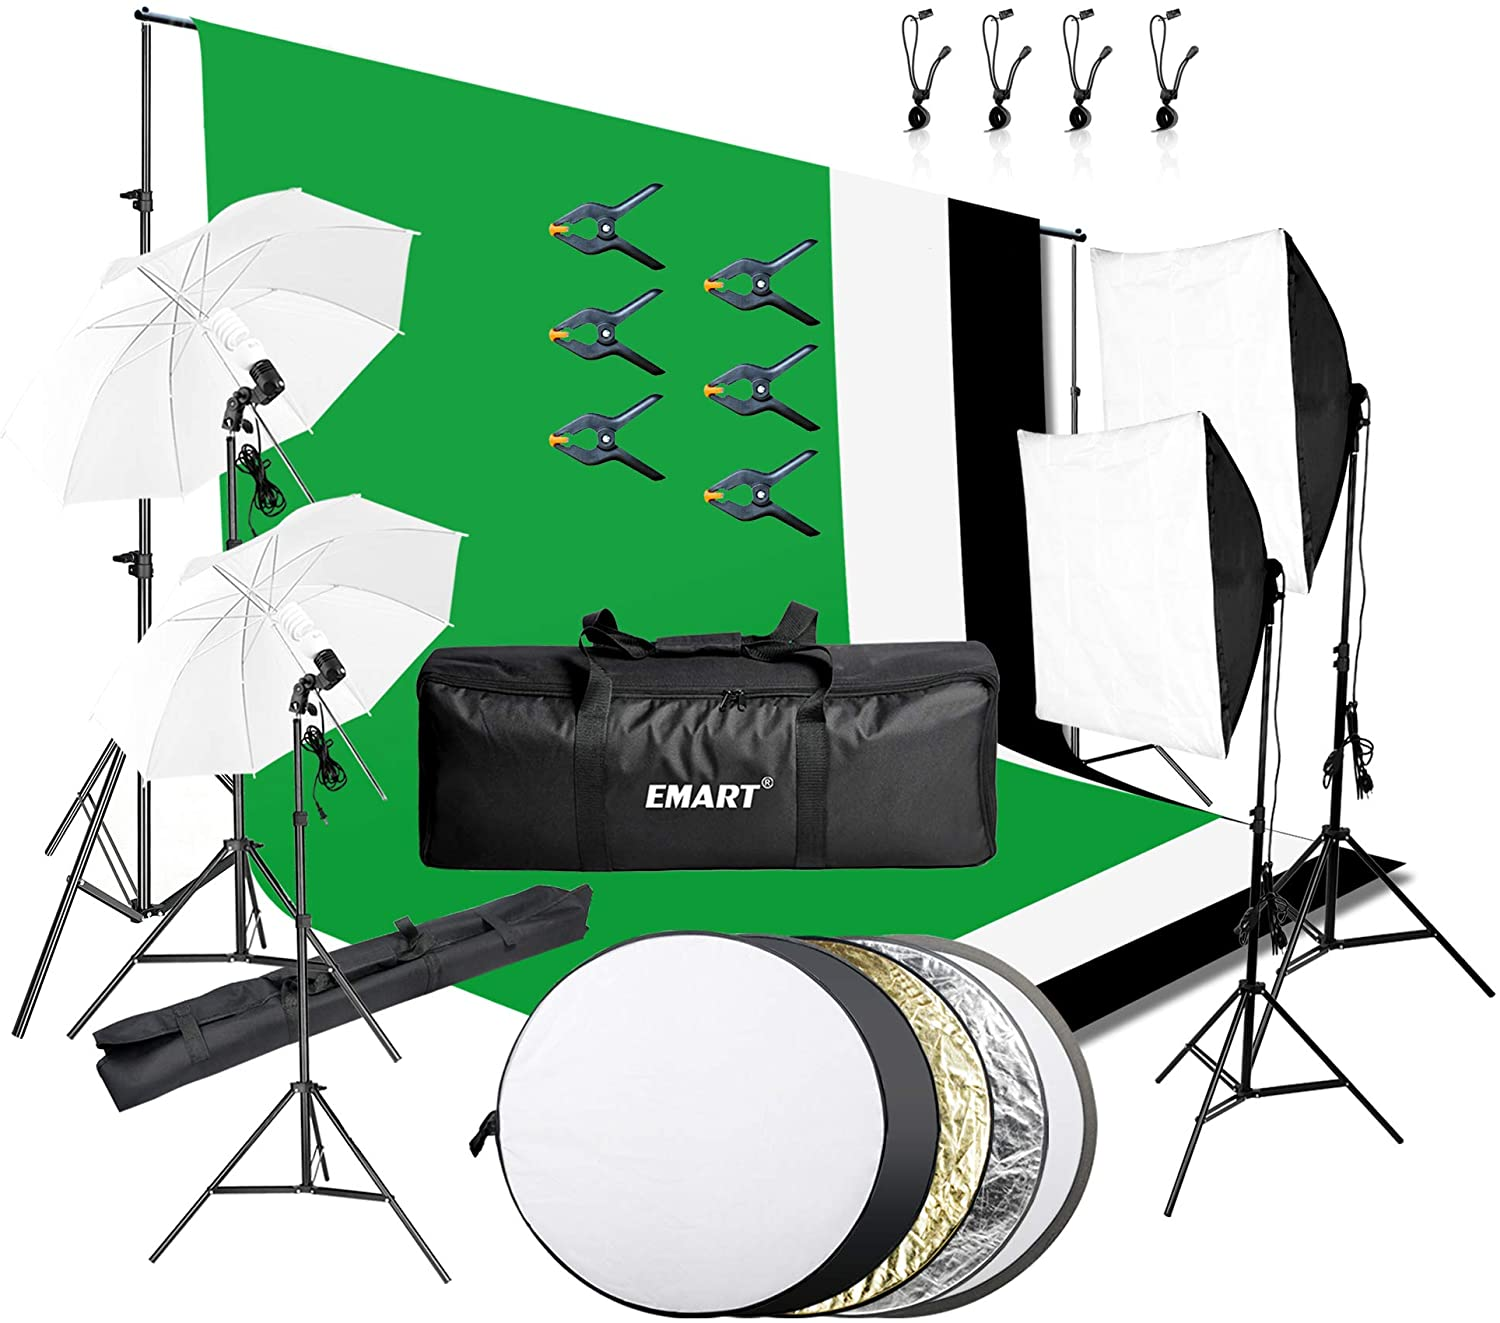 5. Emart Photography & Video Studio Lighting Kits